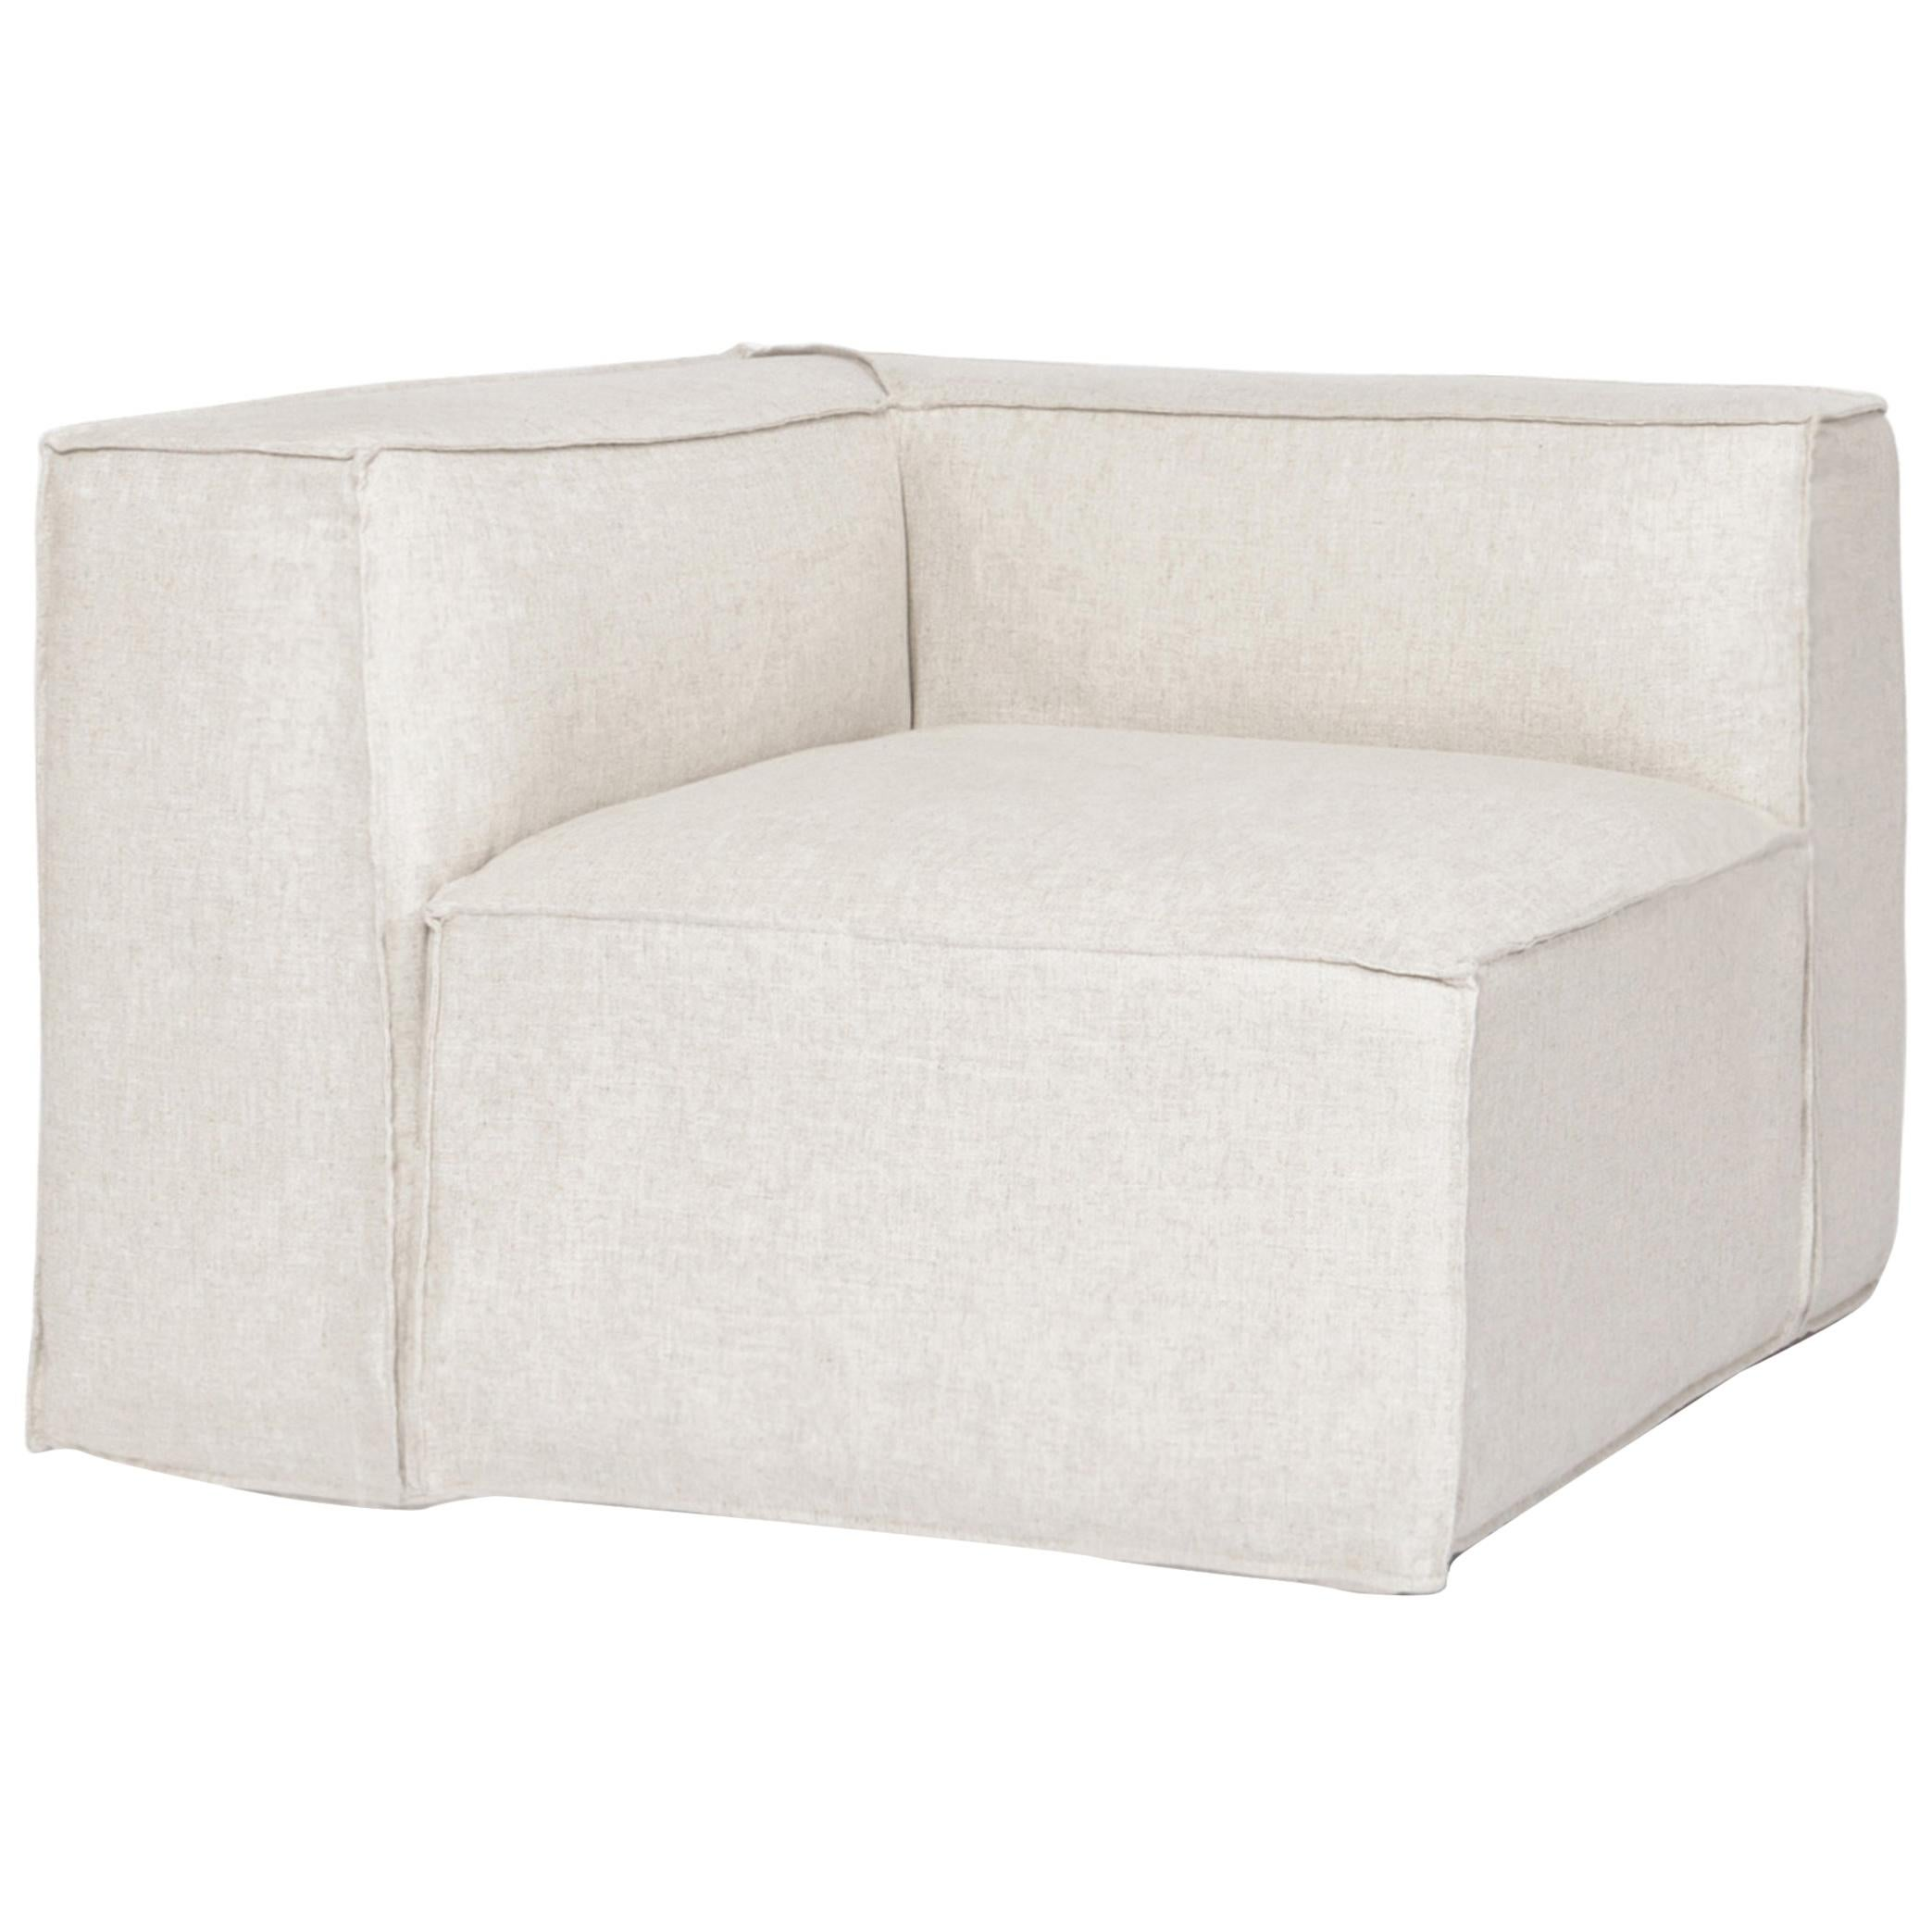 Arena Corner Module for Sofa in Linen Color Cabric Upholstery